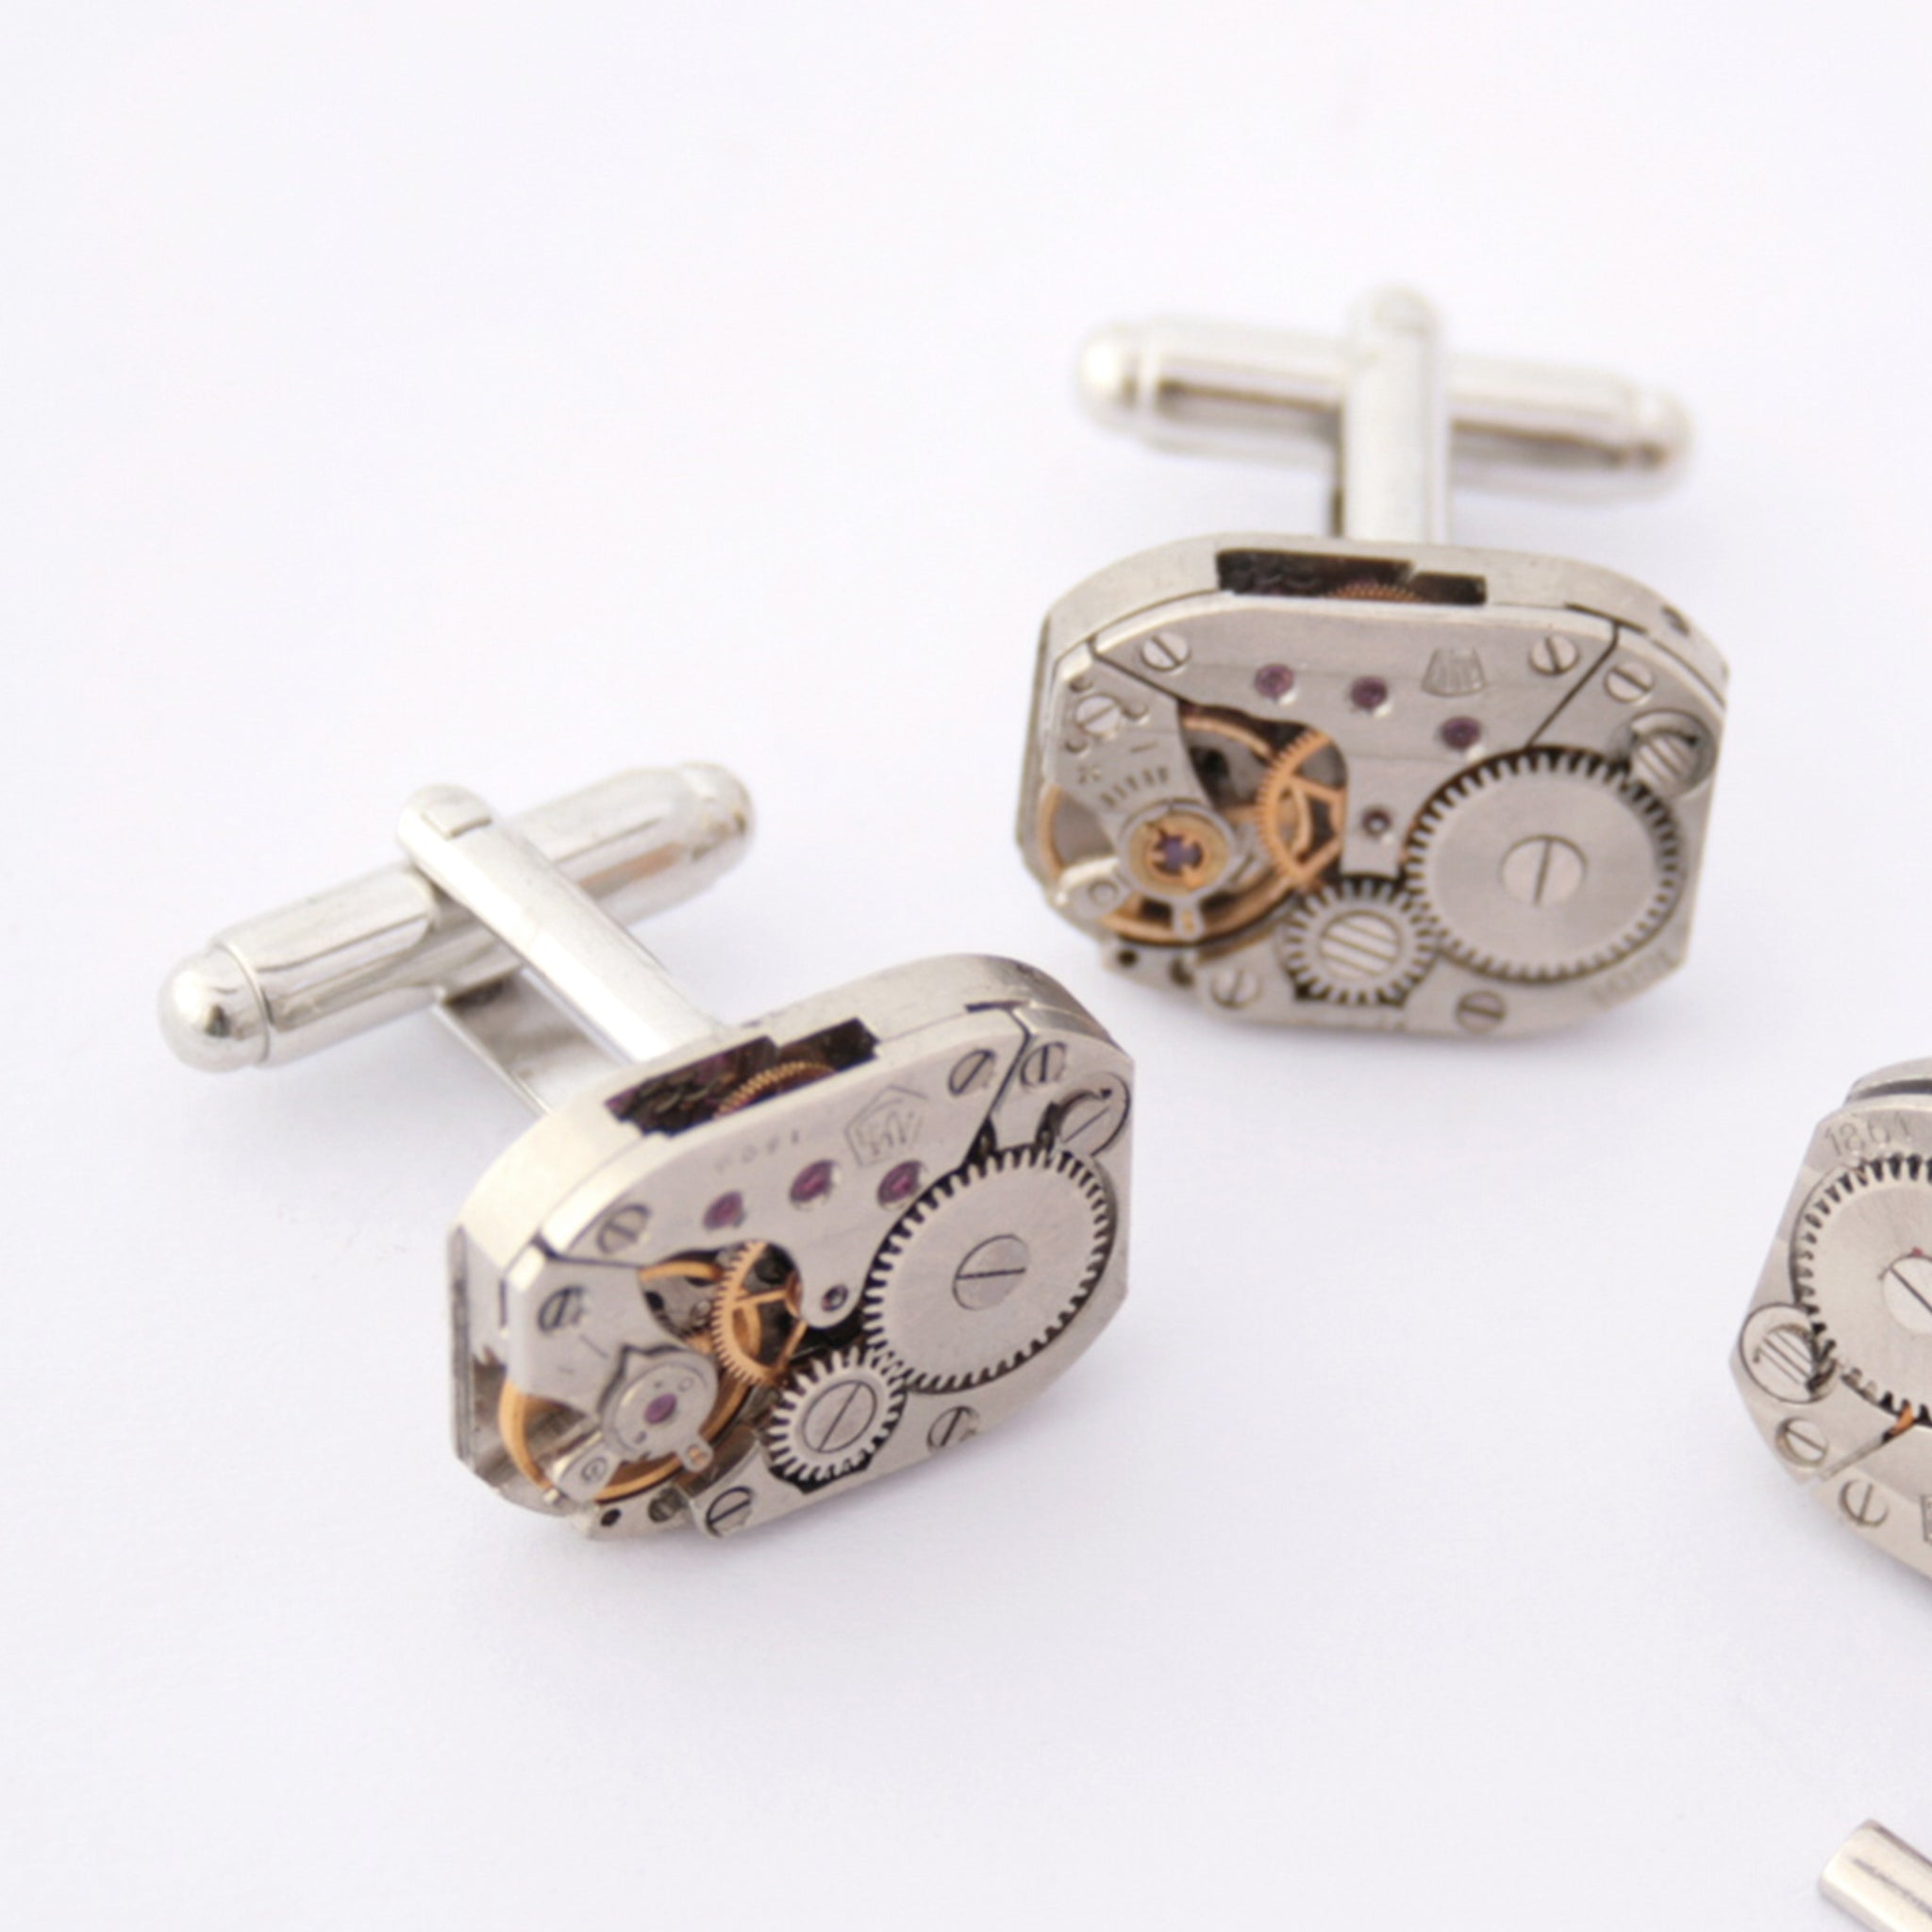 Steampunk Cufflinks made of watch movements